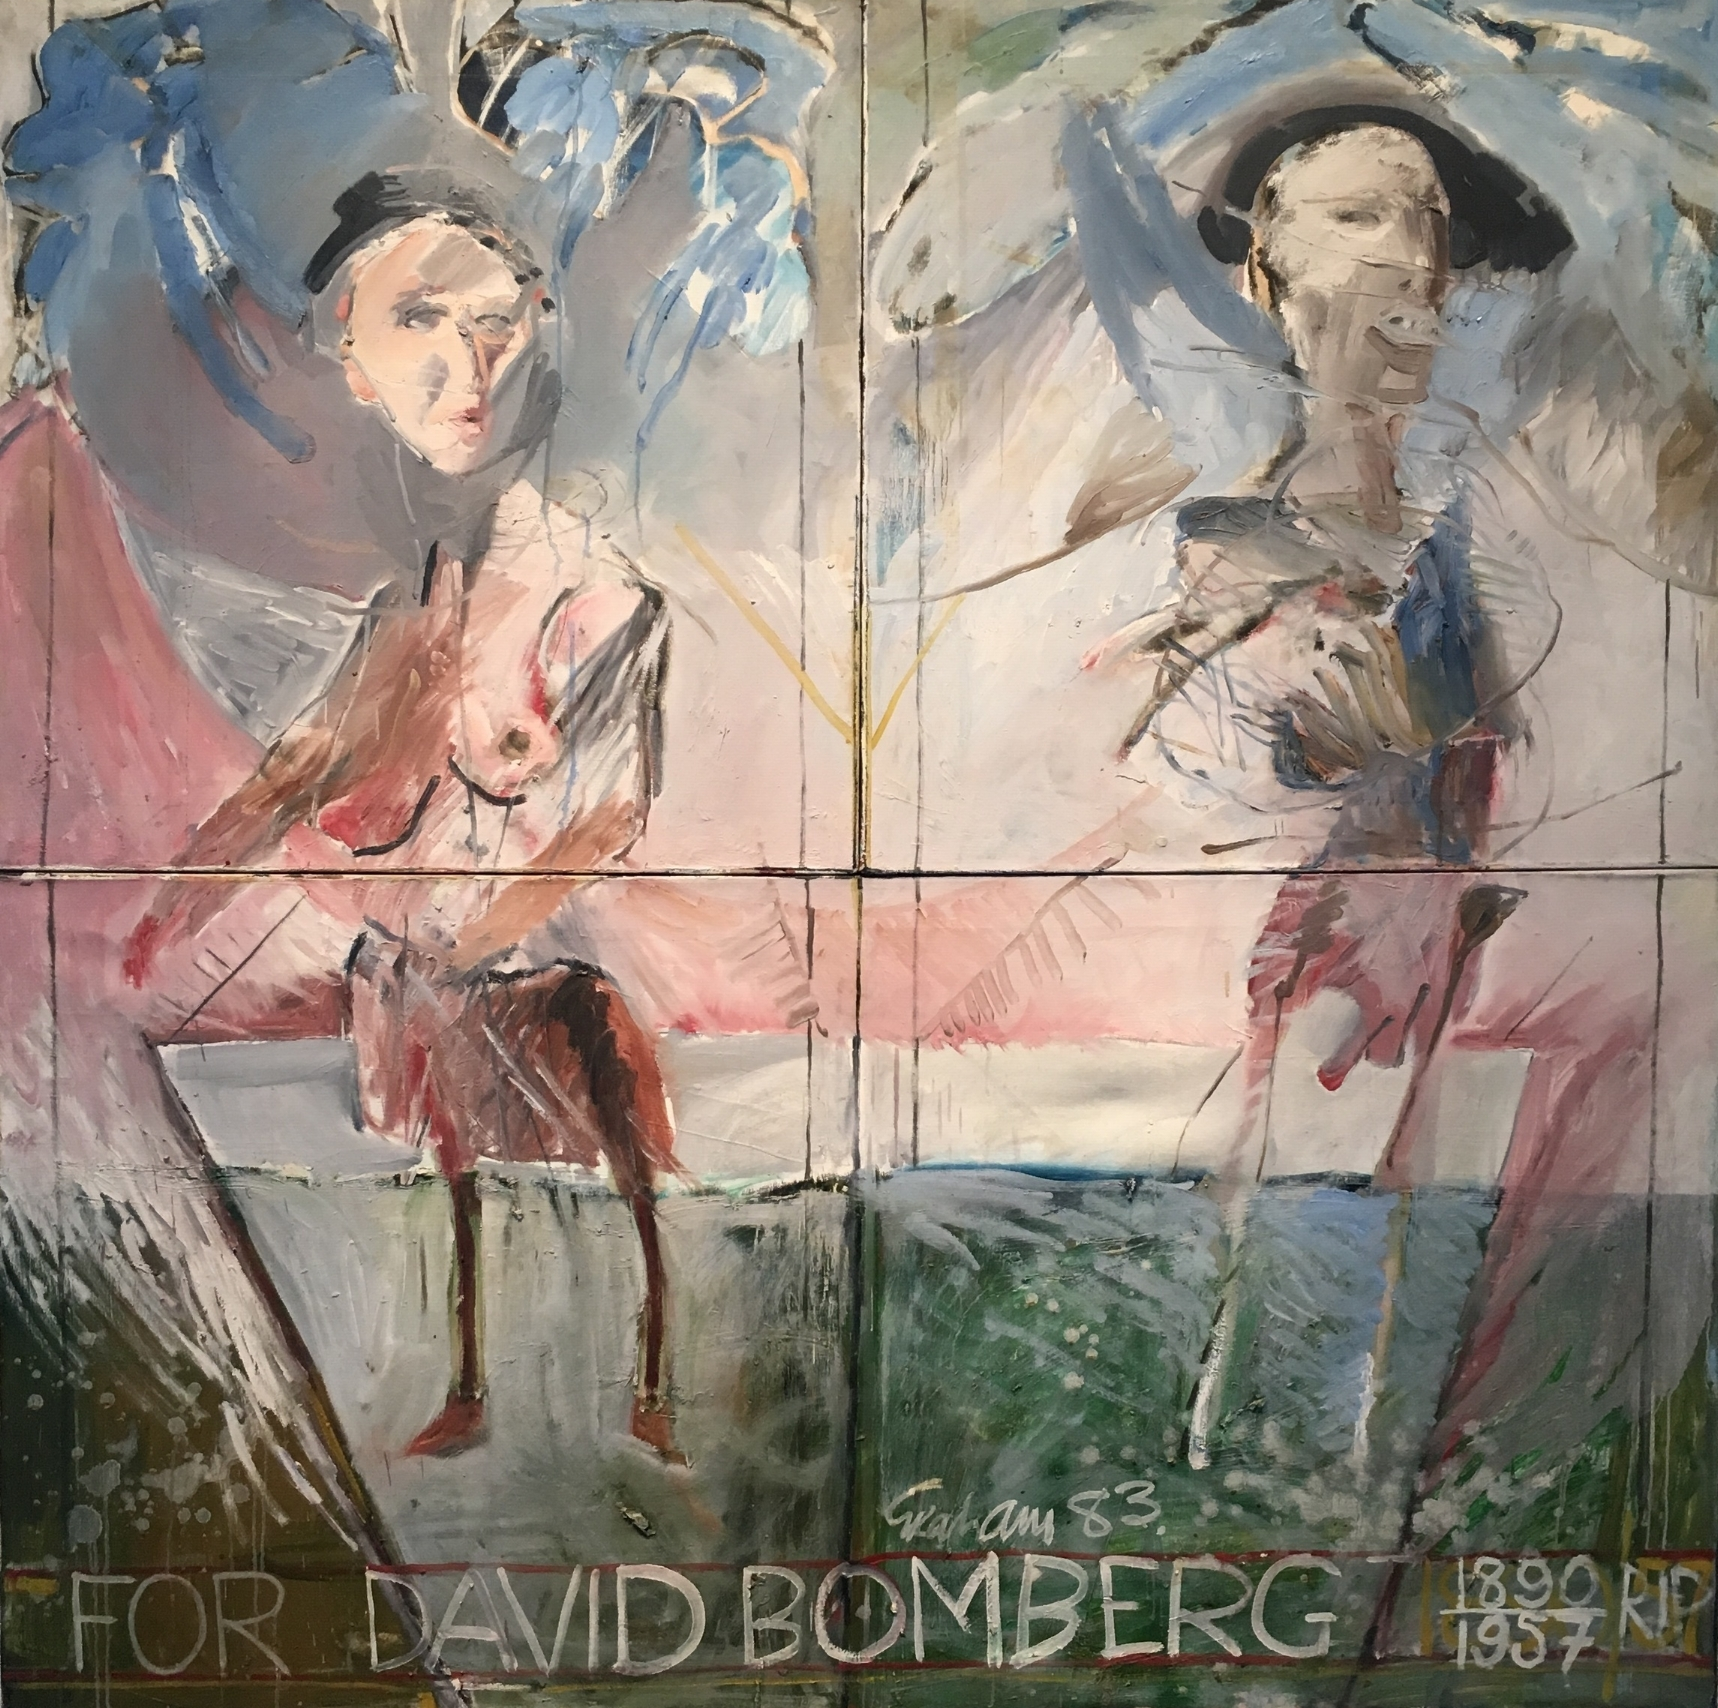 For David Bomberg  by Patrick Graham